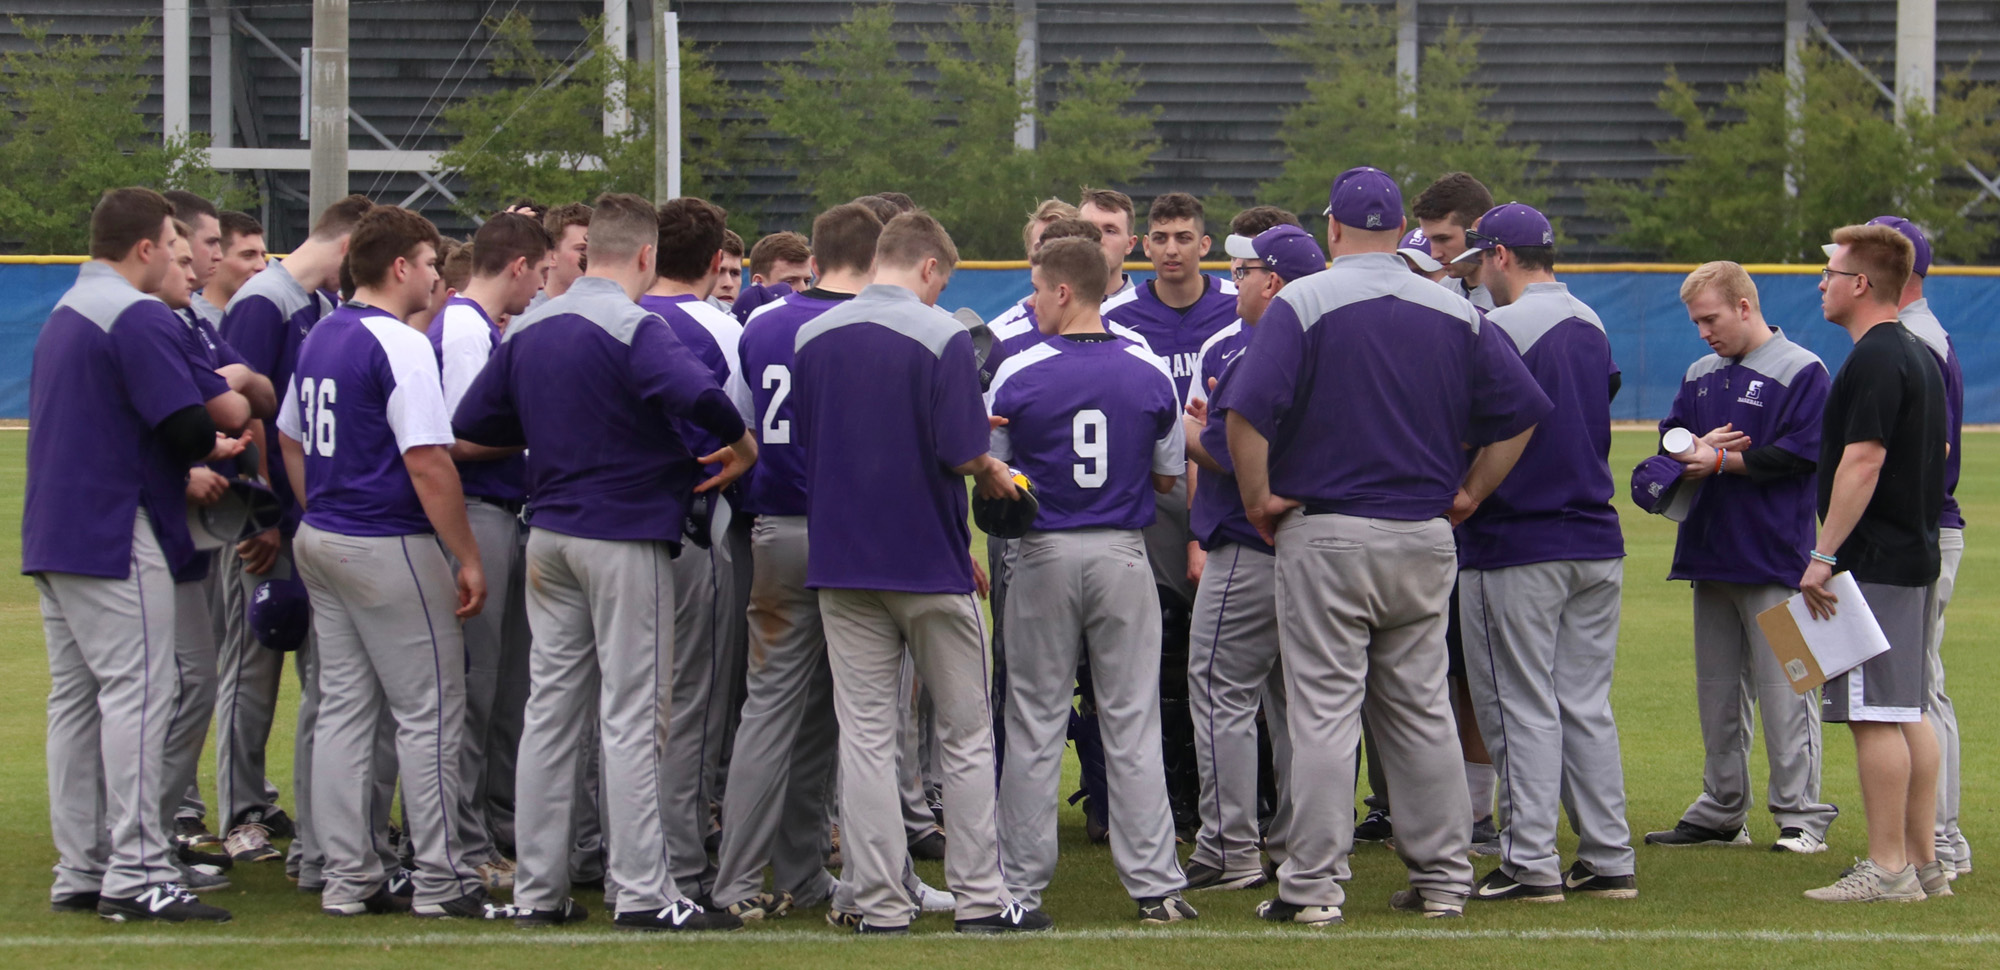 Scranton has been picked fifth in the Landmark Conference preseason coaches poll.